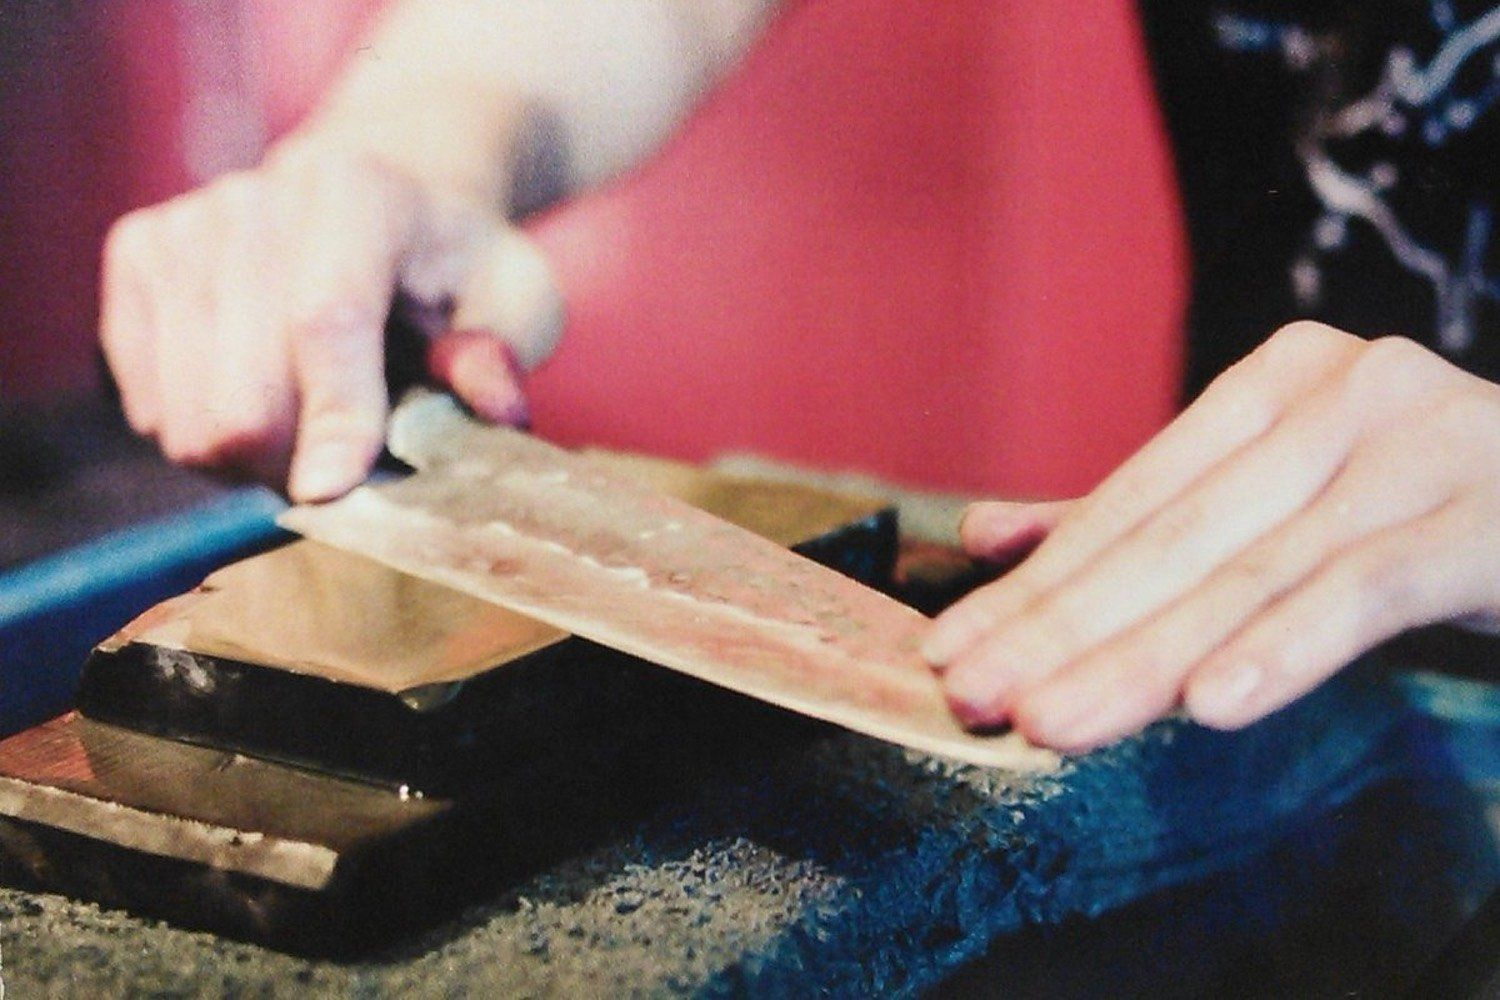 Knife Sharpening Classes